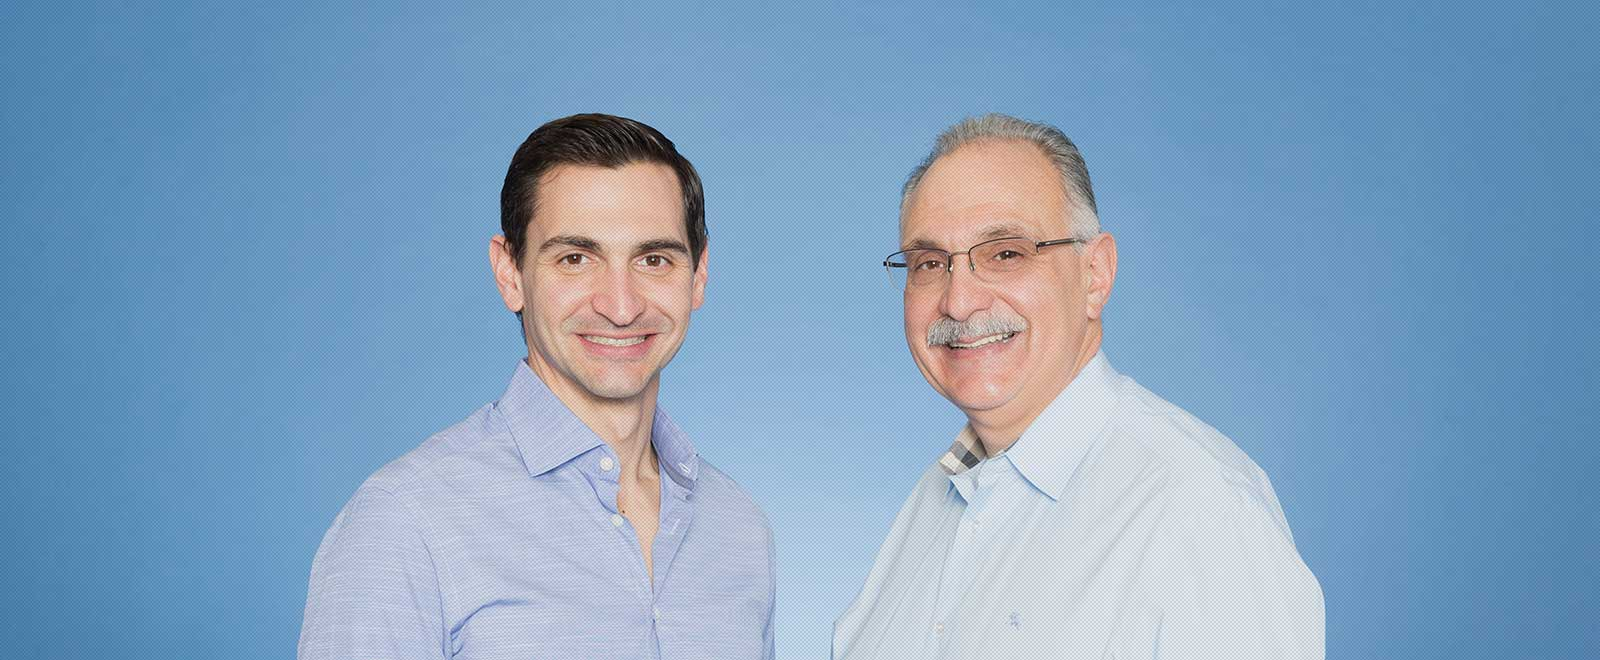 Dr. George and Dr. Peter Scordilis